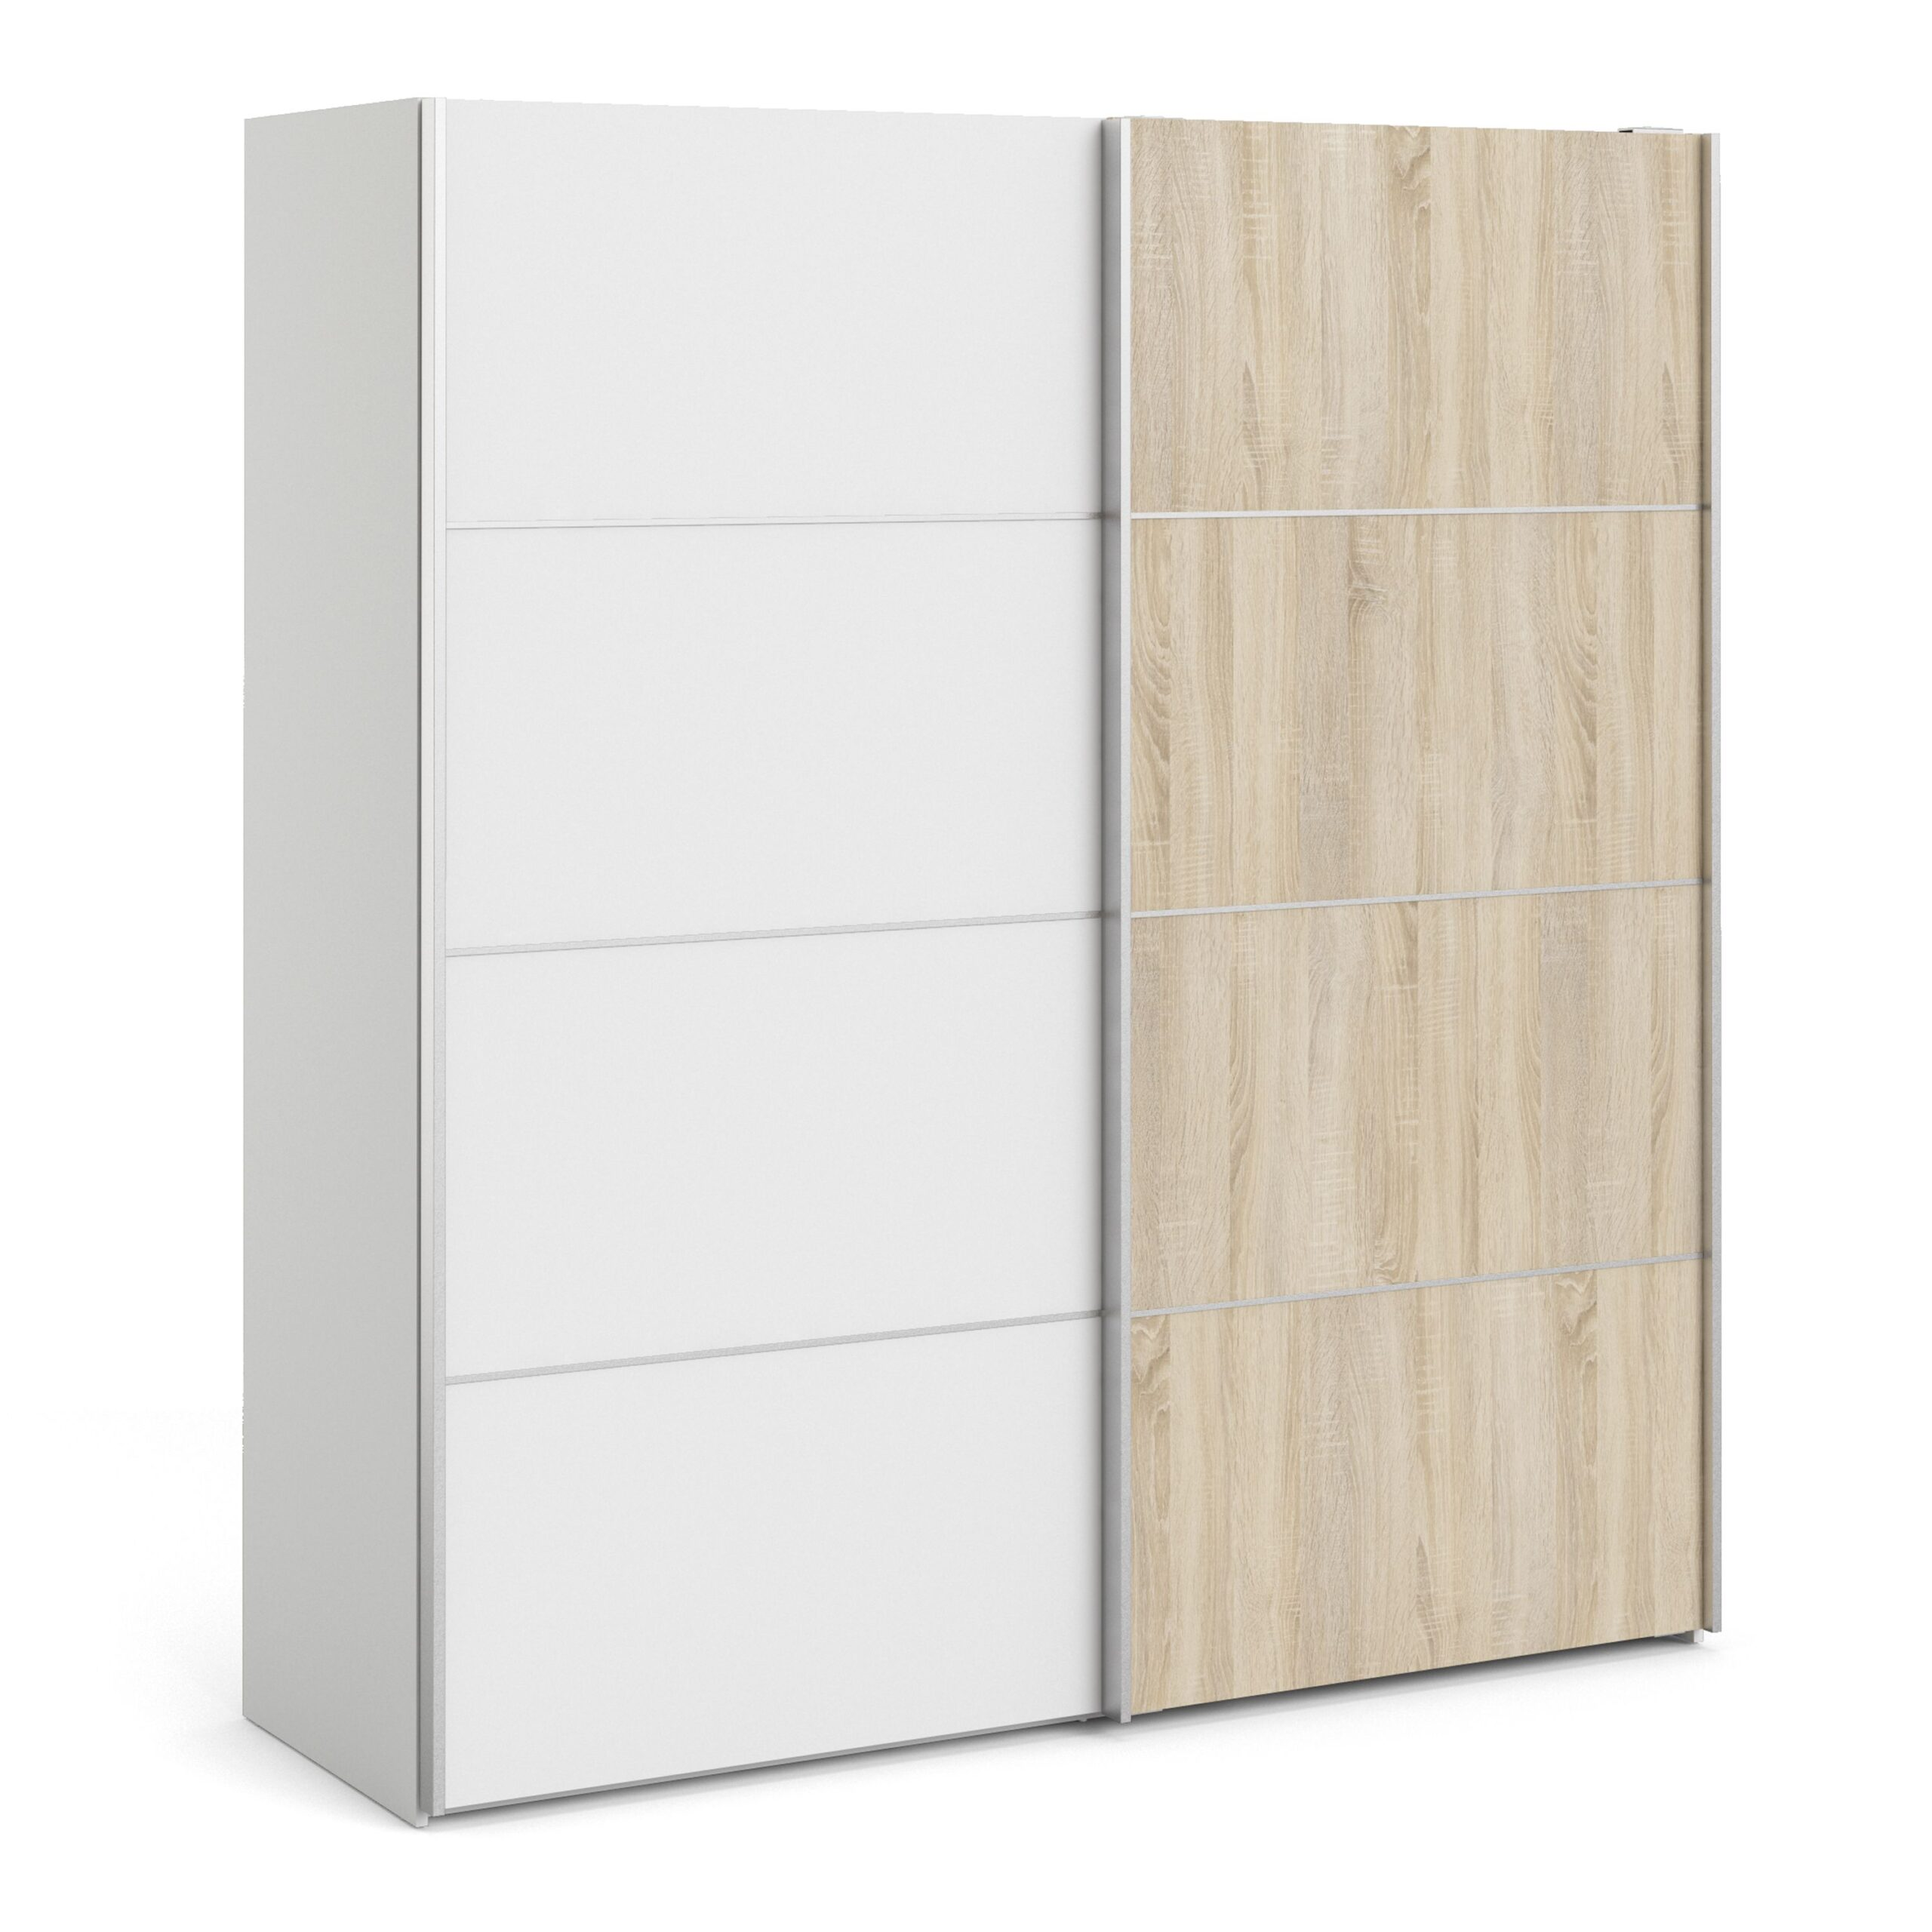 Phillipe Sliding Wardrobe 180cm in White with White and Oak doors with 2 Shelves